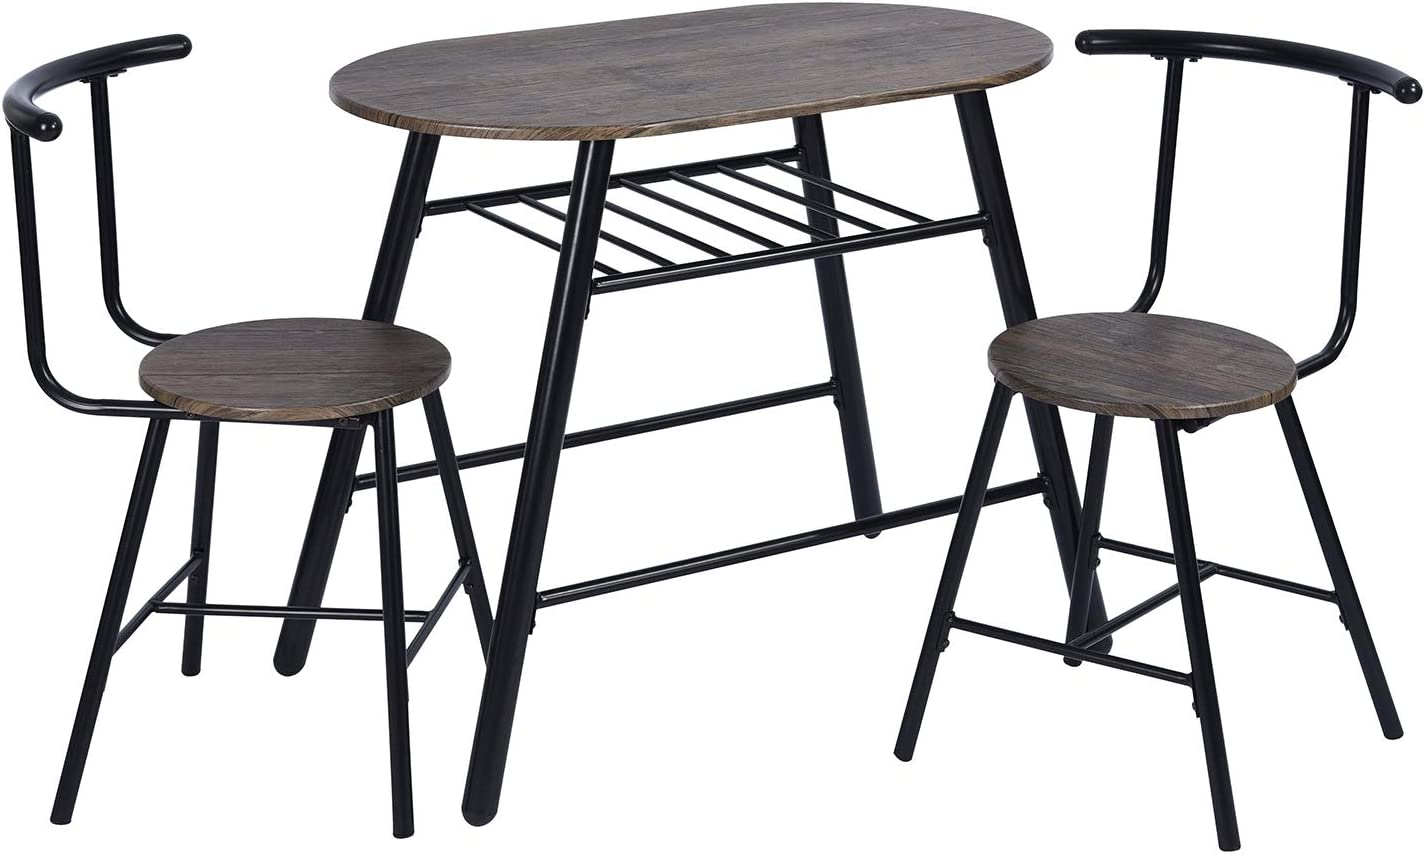 FurnitureR 3 Piece Metal Wooden Dining Table Sets Oval Table and 2 Round Chairs for Home Kitchen Modern Furniture